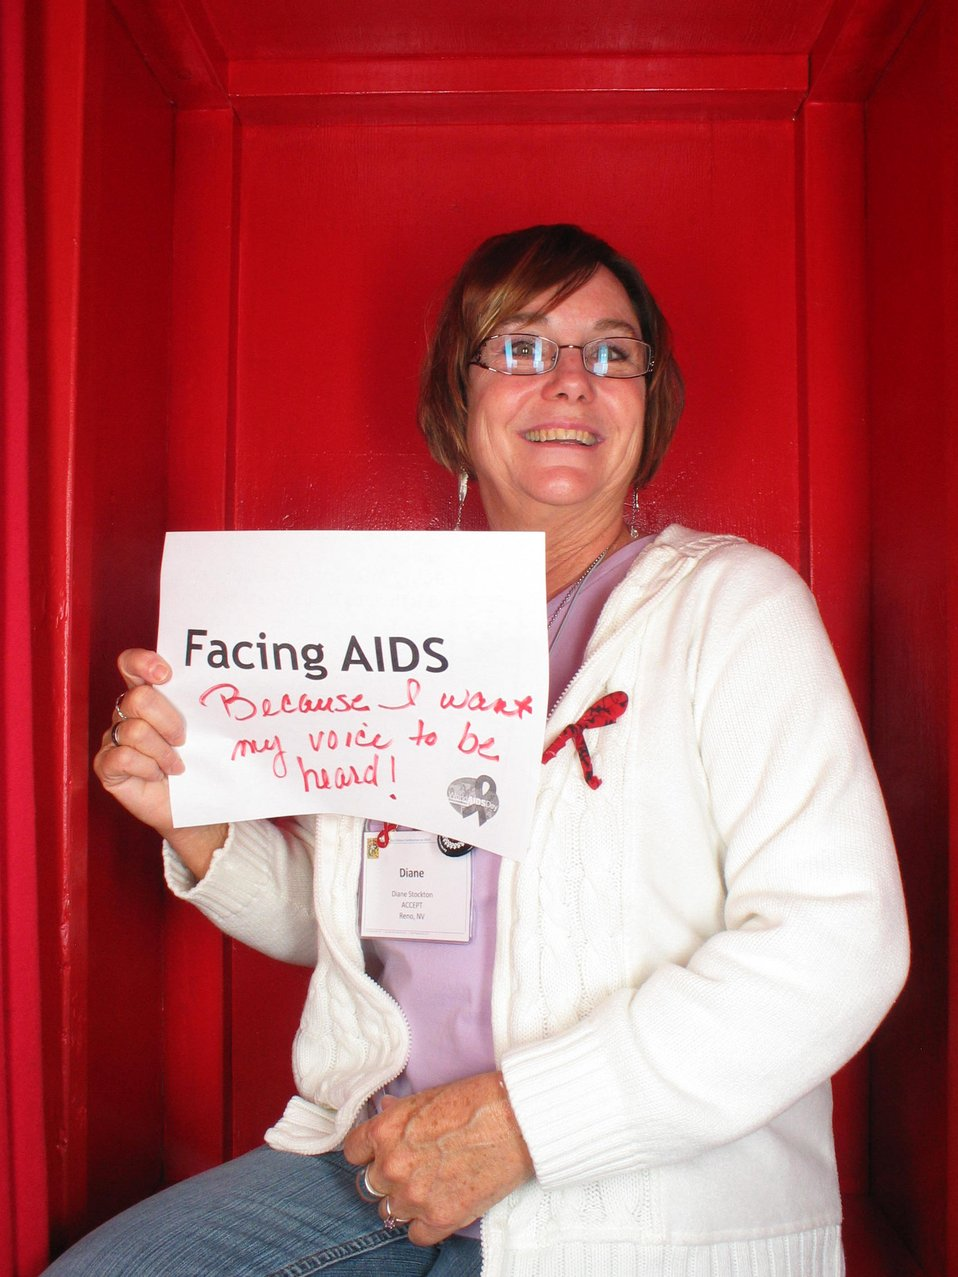 Facing AIDS because I want my voice to be heard!